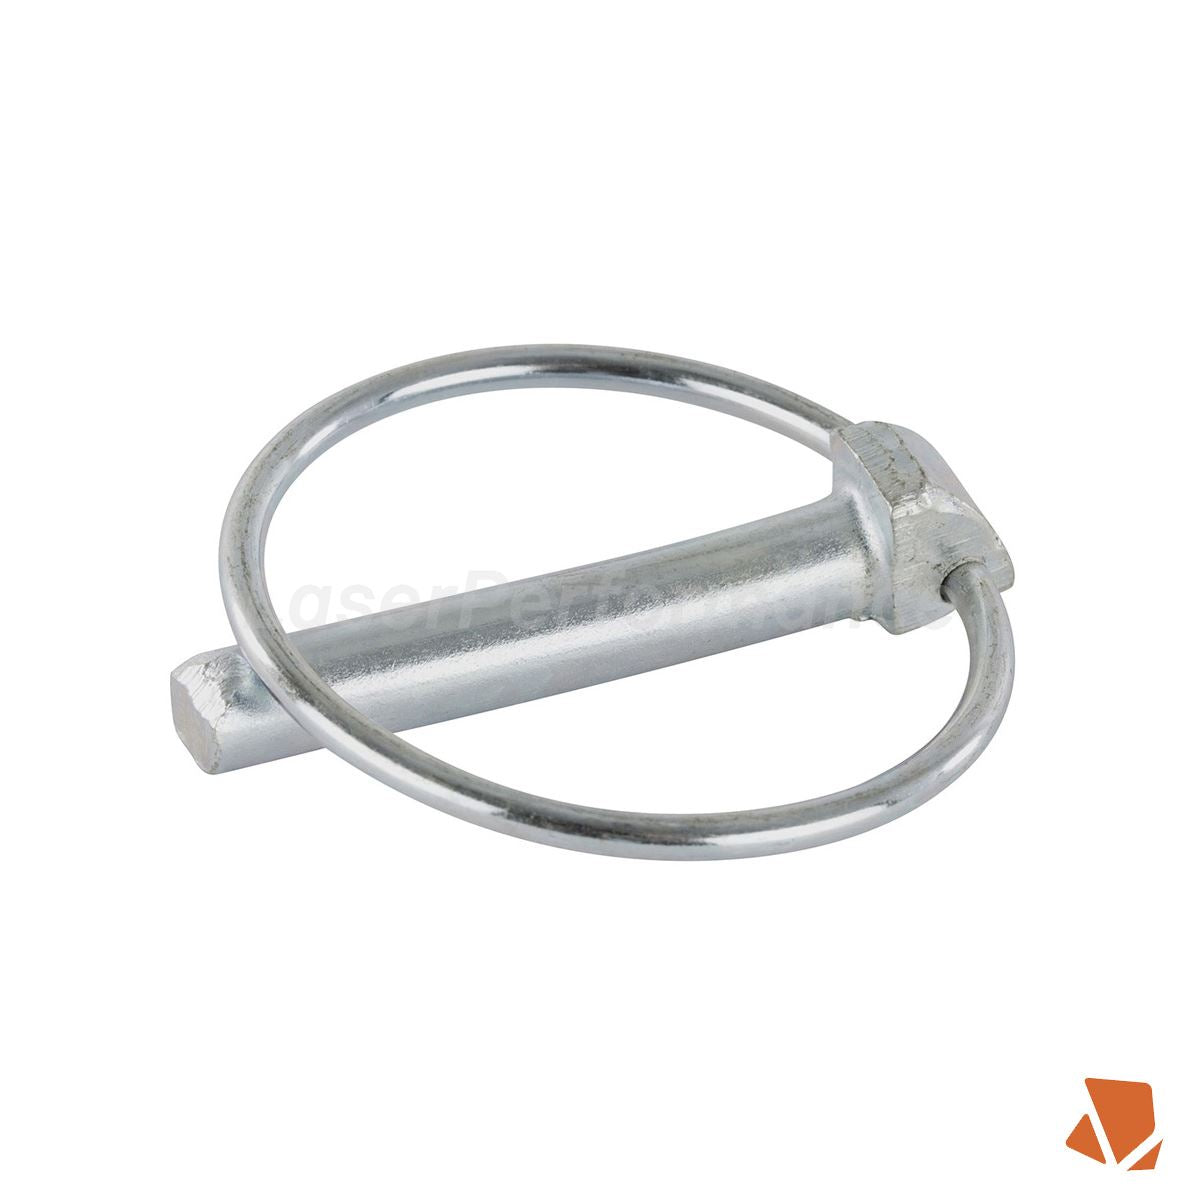 Laser Trolley Wheel Spring Clip